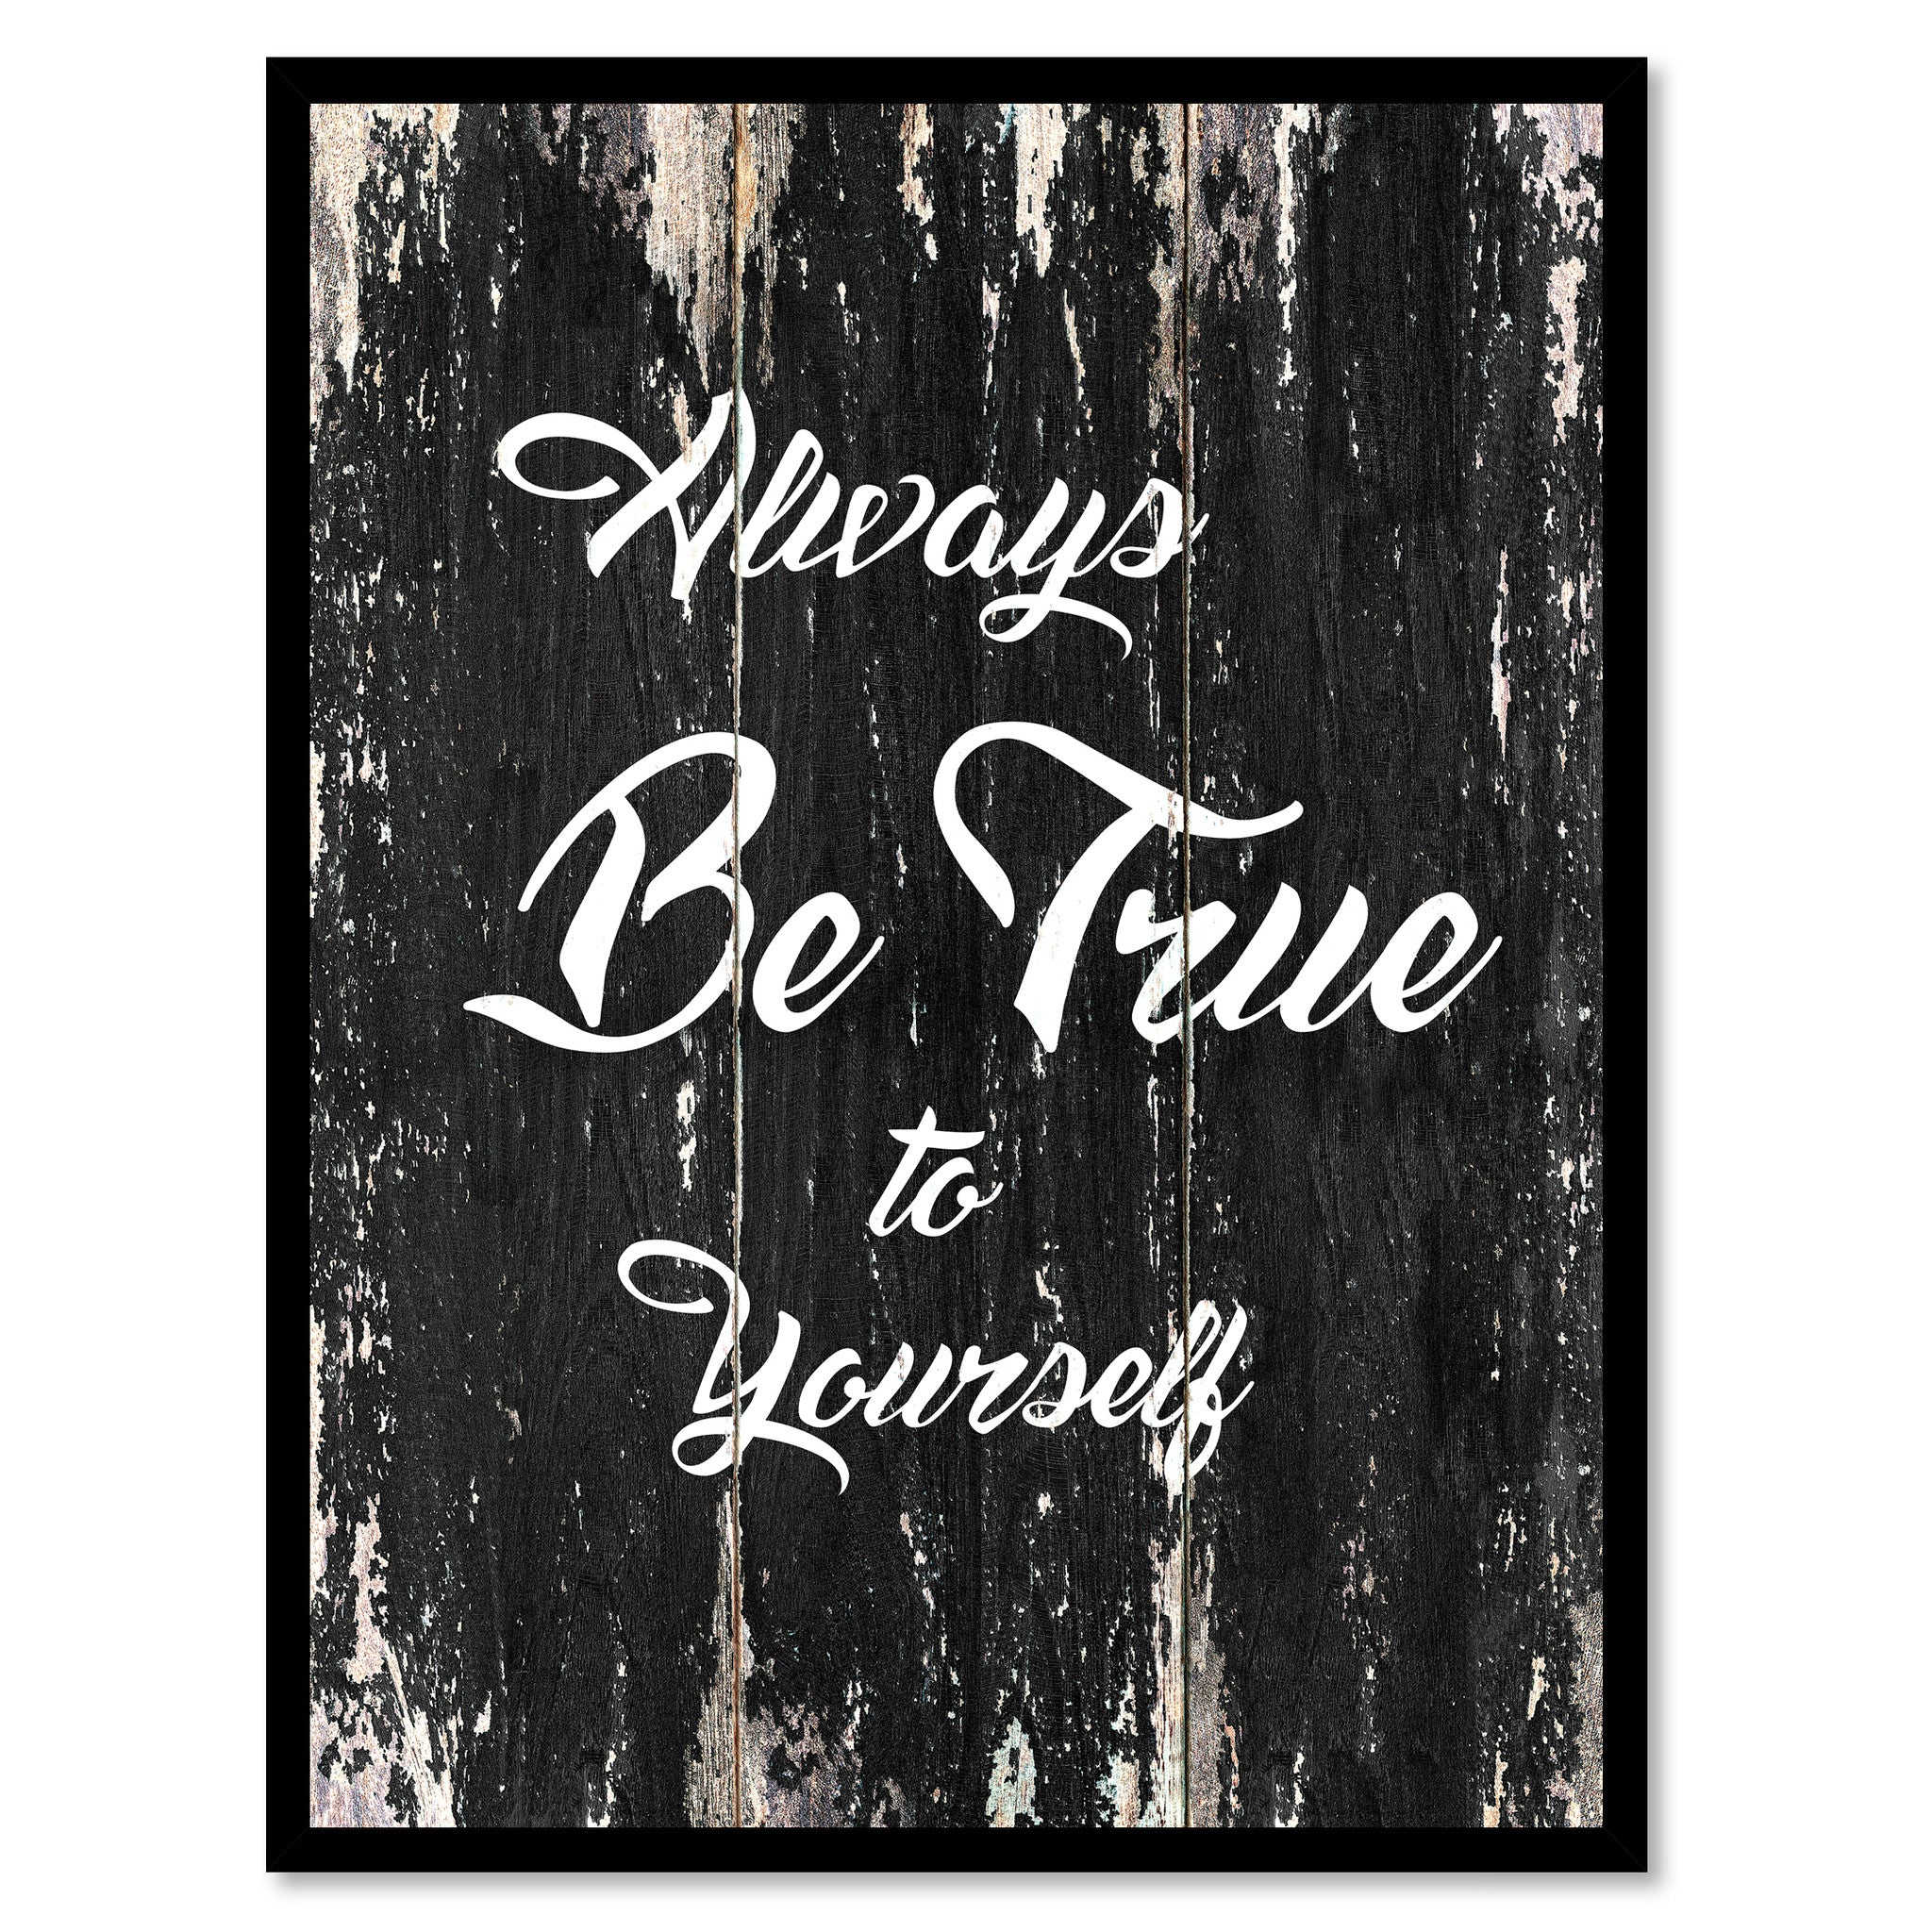 Always be true to yourself Motivational Quote Saying Canvas Print with Picture Frame Home Decor Wall Art